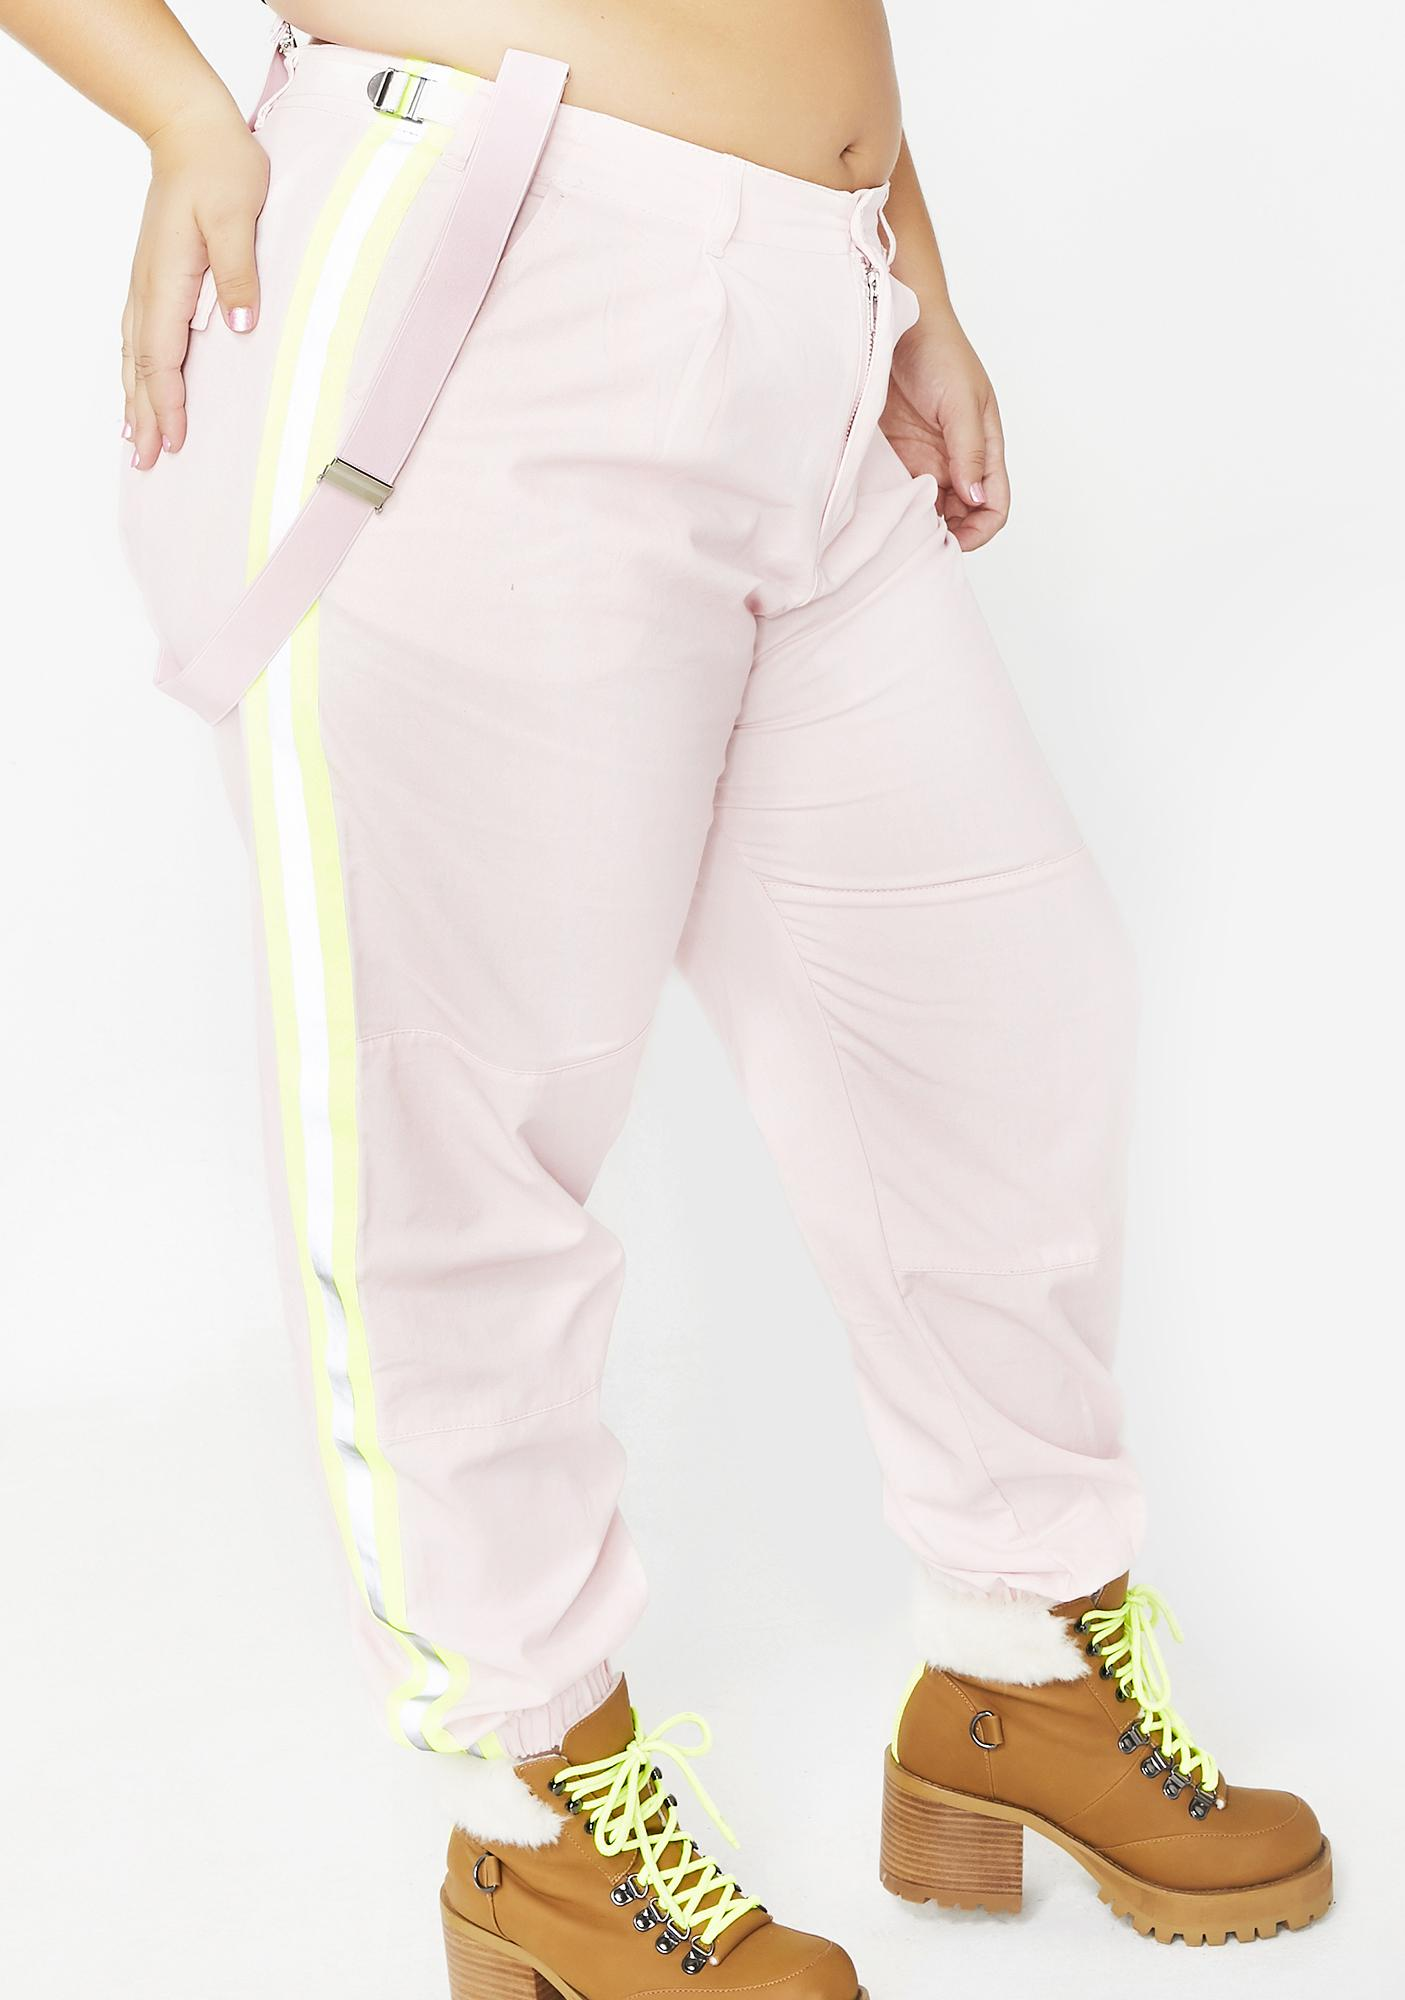 Poster Grl Queen Champagne Shine Reflective Pants